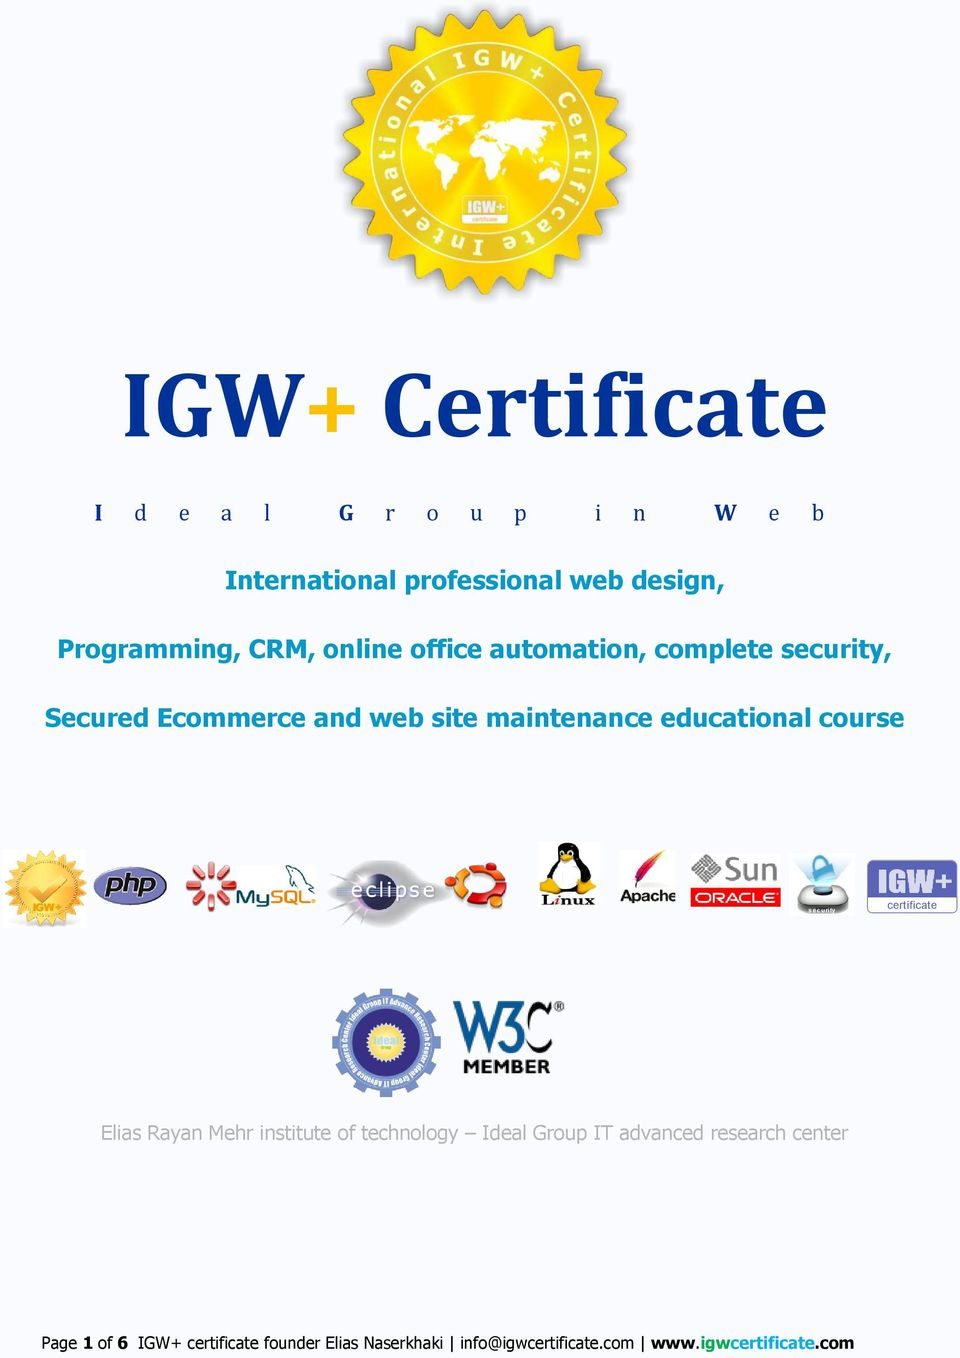 course IGW+ security certificate Elias Rayan Mehr institute of technology Ideal Group IT advanced